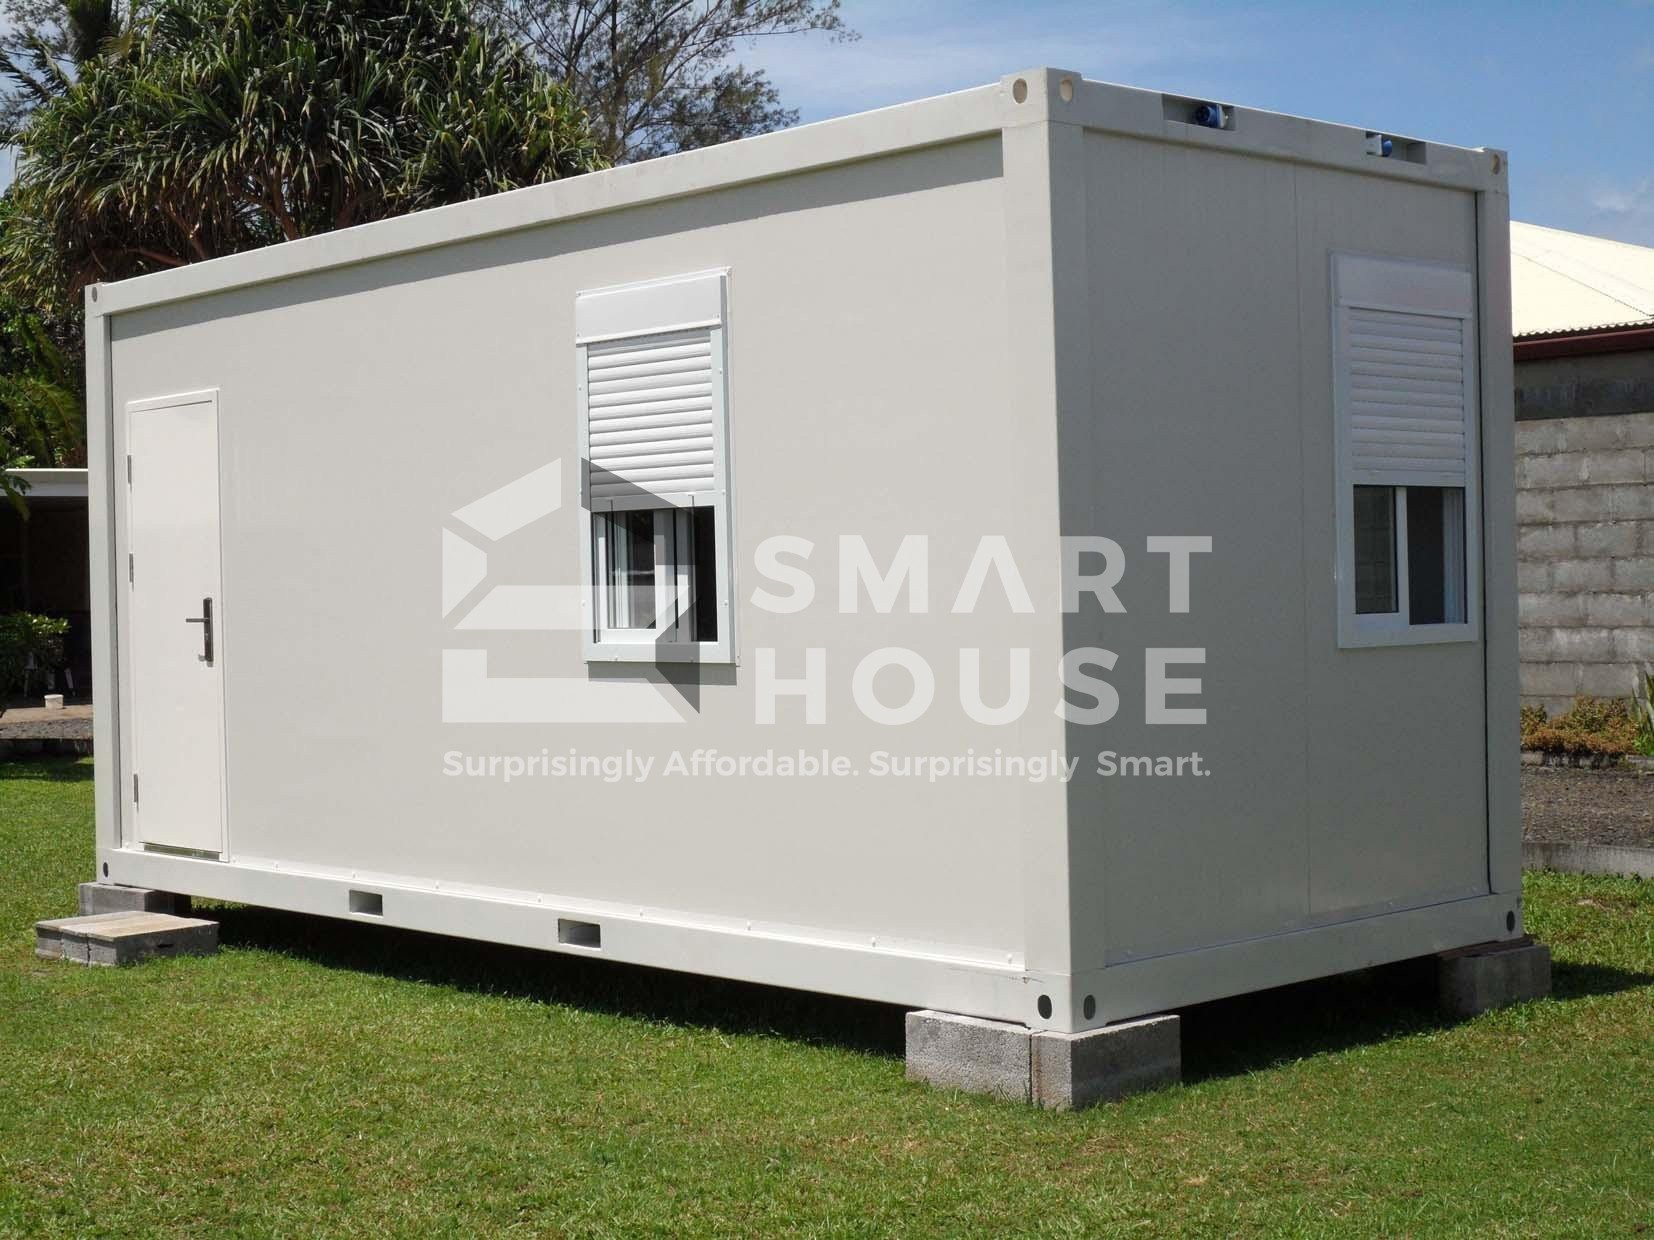 Patented Luxury Container House Smarthouse